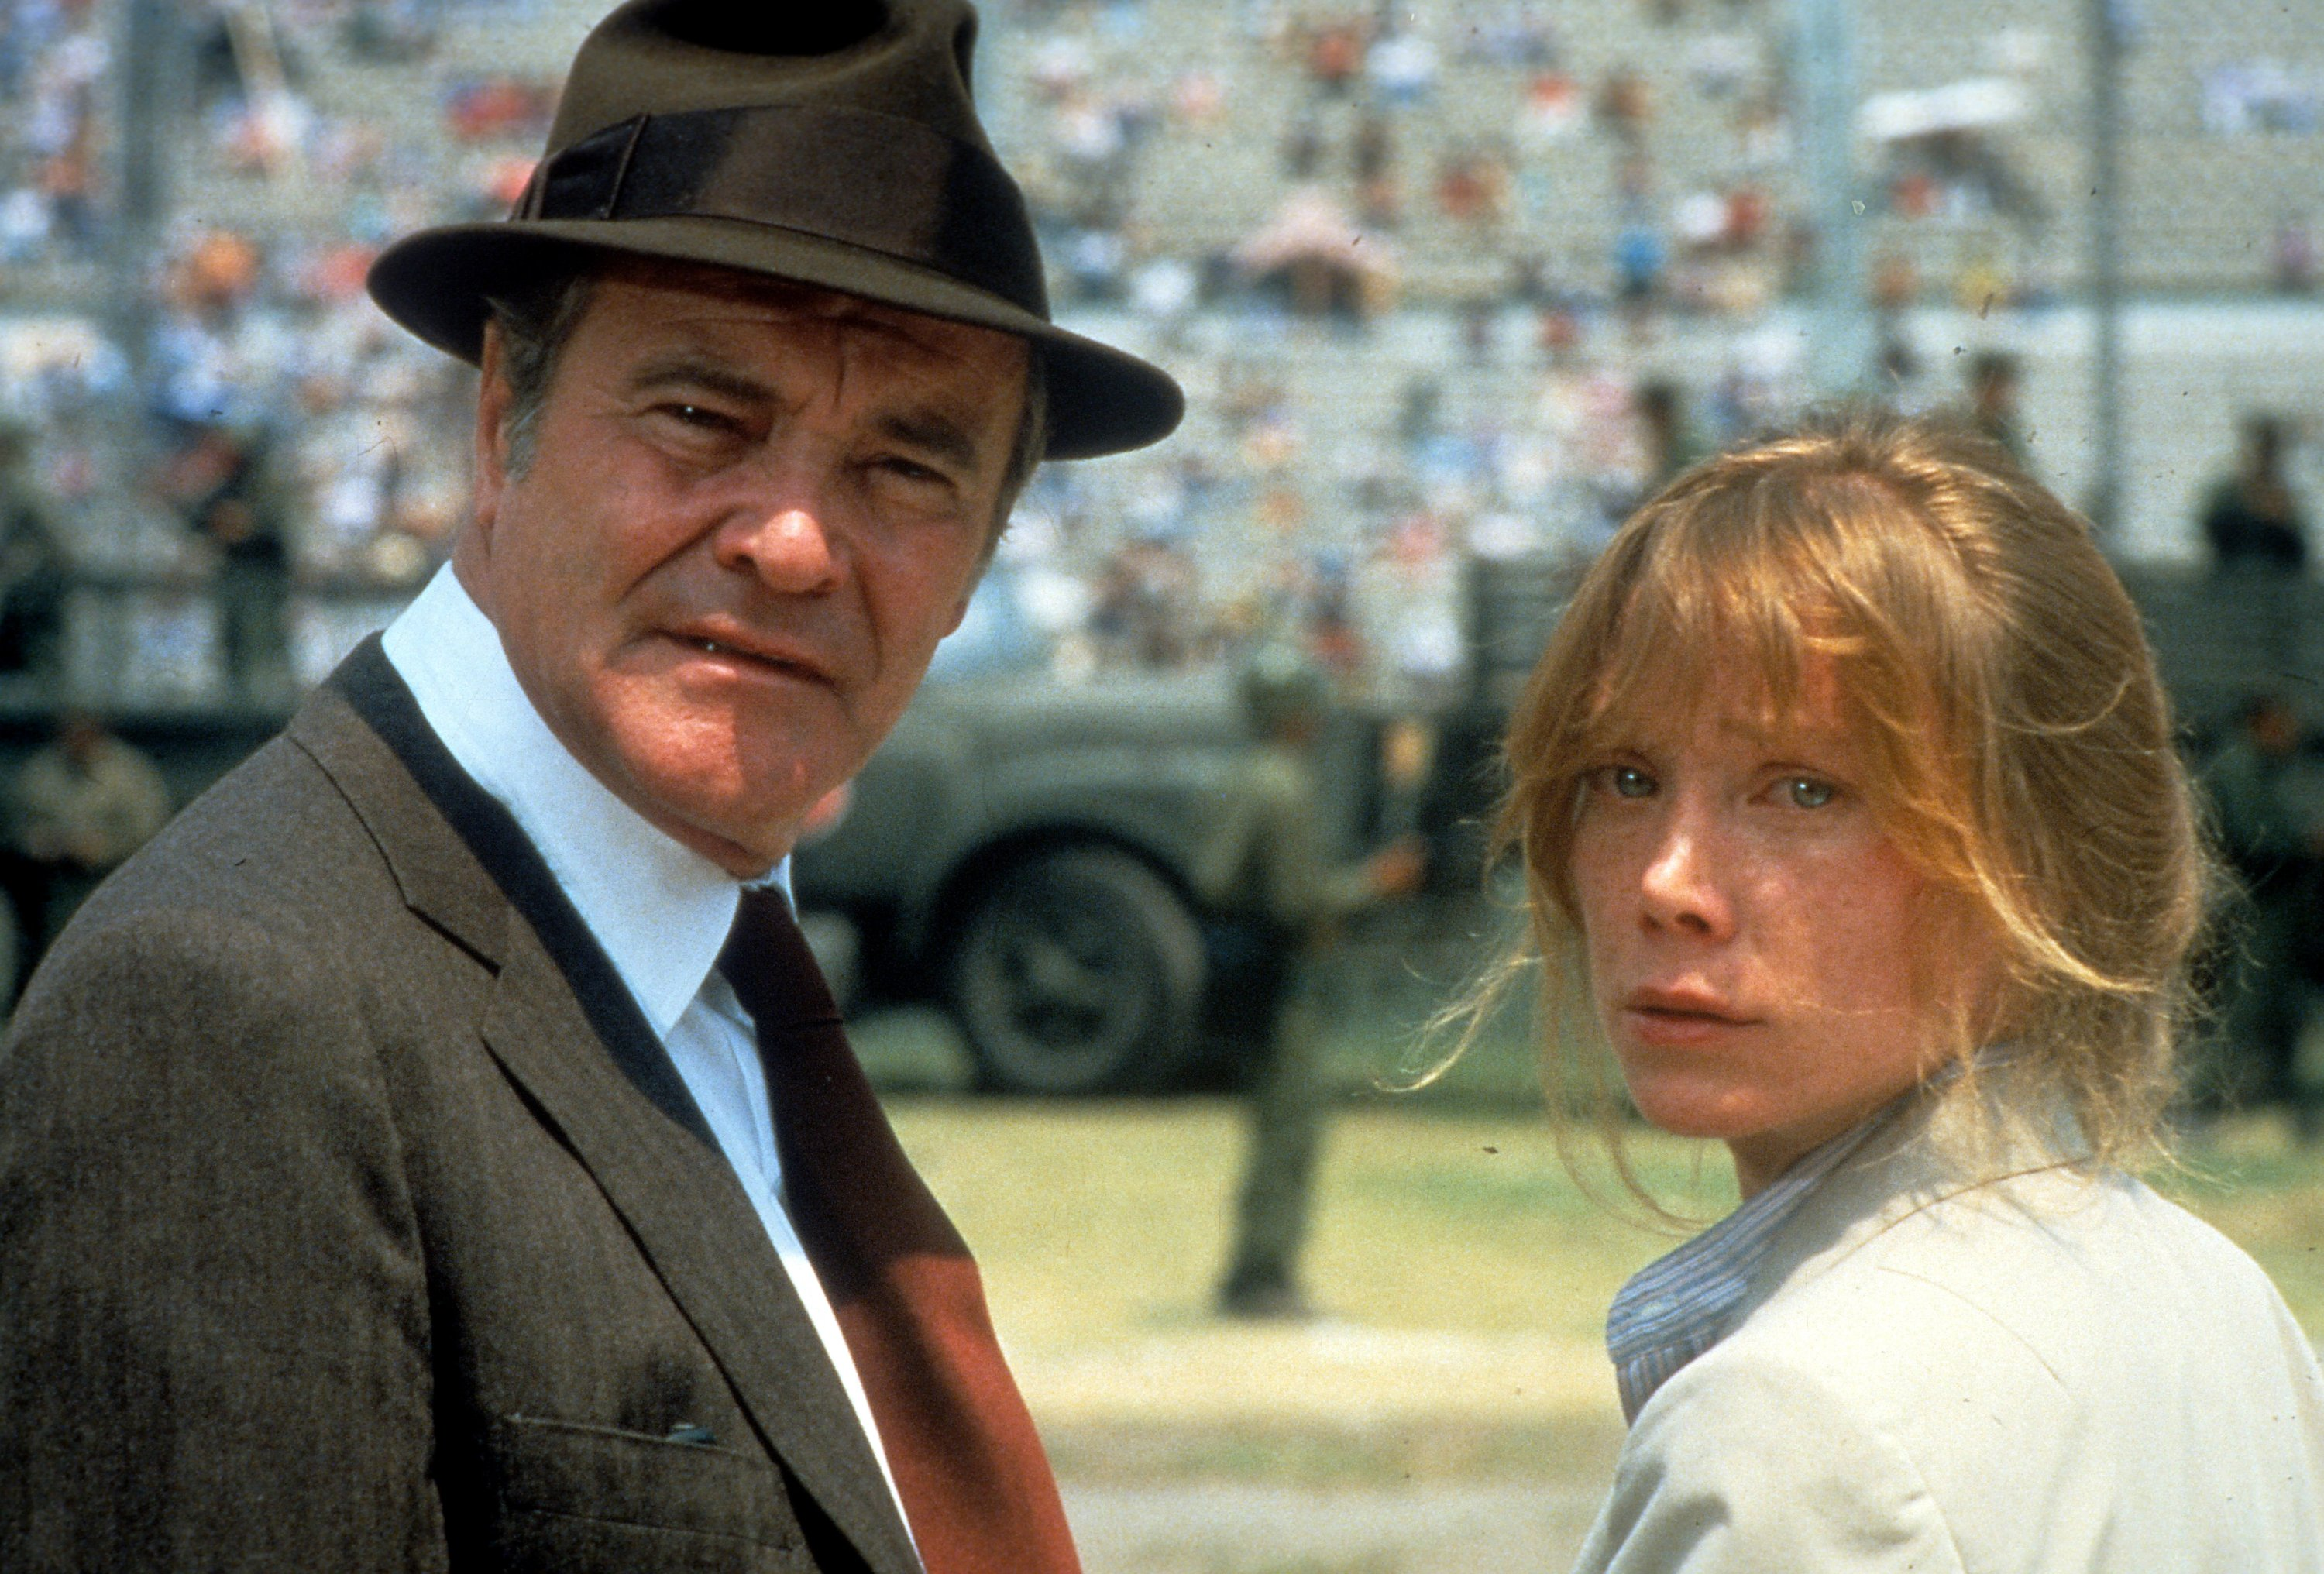 Jack Lemmon and Sissy Spacek in a scene from the film 'Missing.'